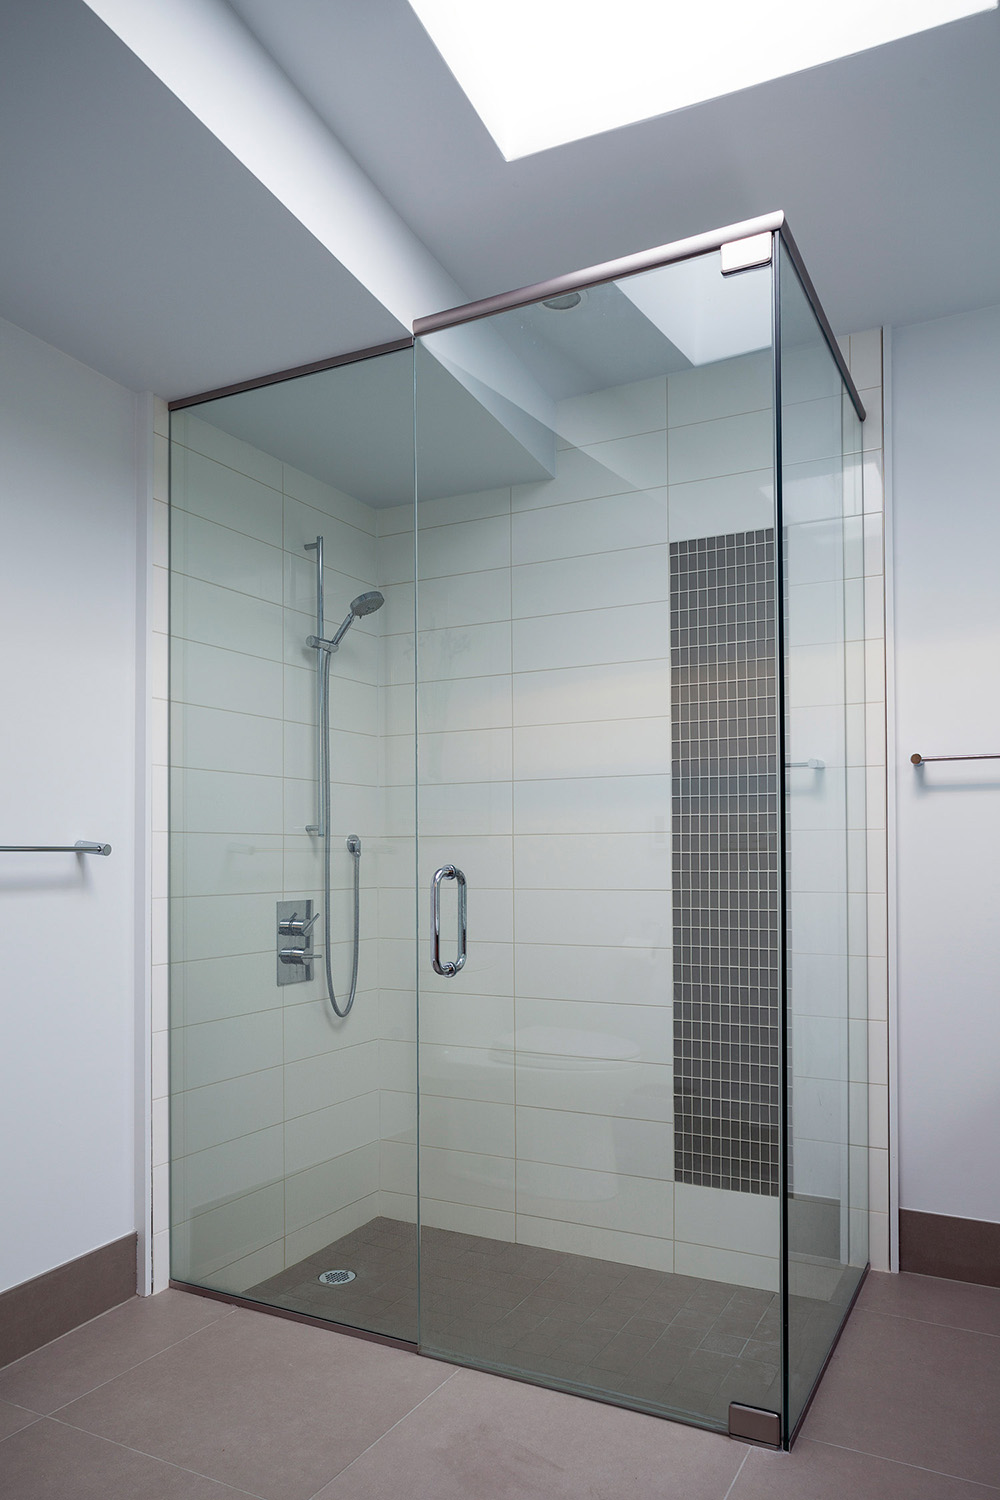 Recessed shower with glass enclosure subway tile backsplash with black accent tile strip and stainless steel fixture